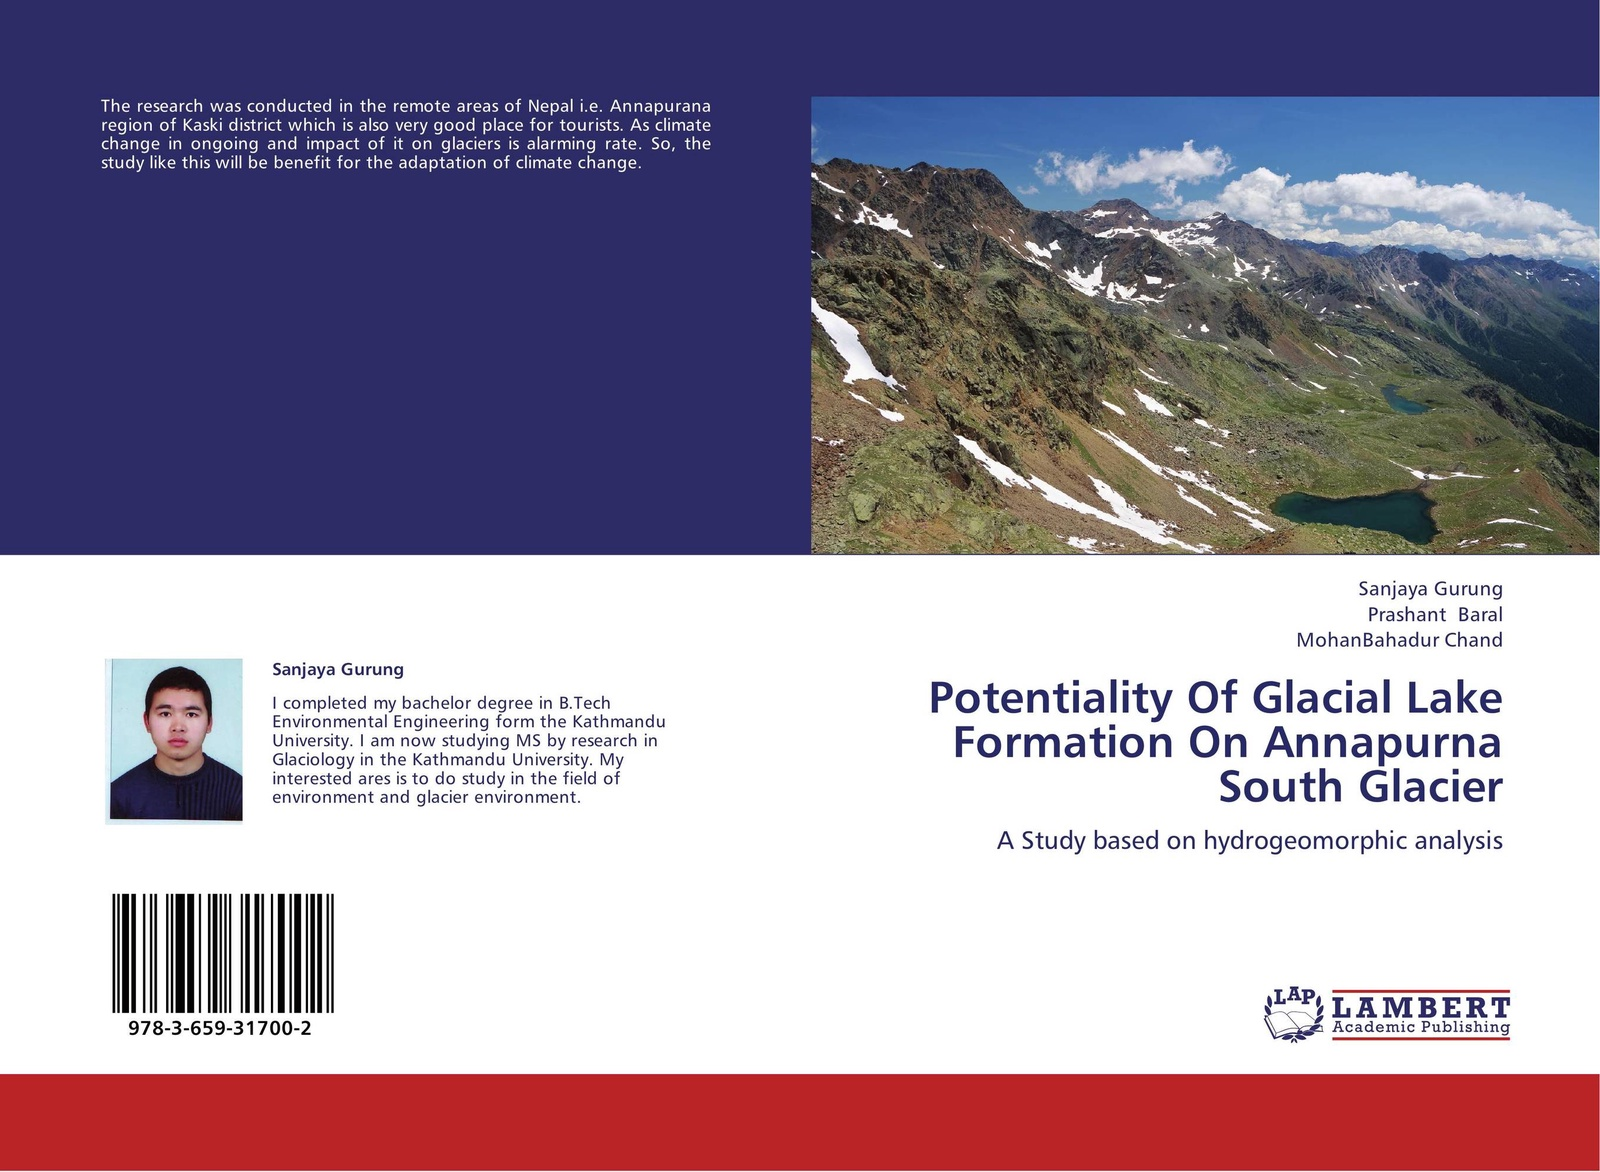 Sanjaya Gurung,Prashant Baral and MohanBahadur Chand Potentiality Of Glacial Lake Formation On Annapurna South Glacier avifaunal diversity in raniban kaski district